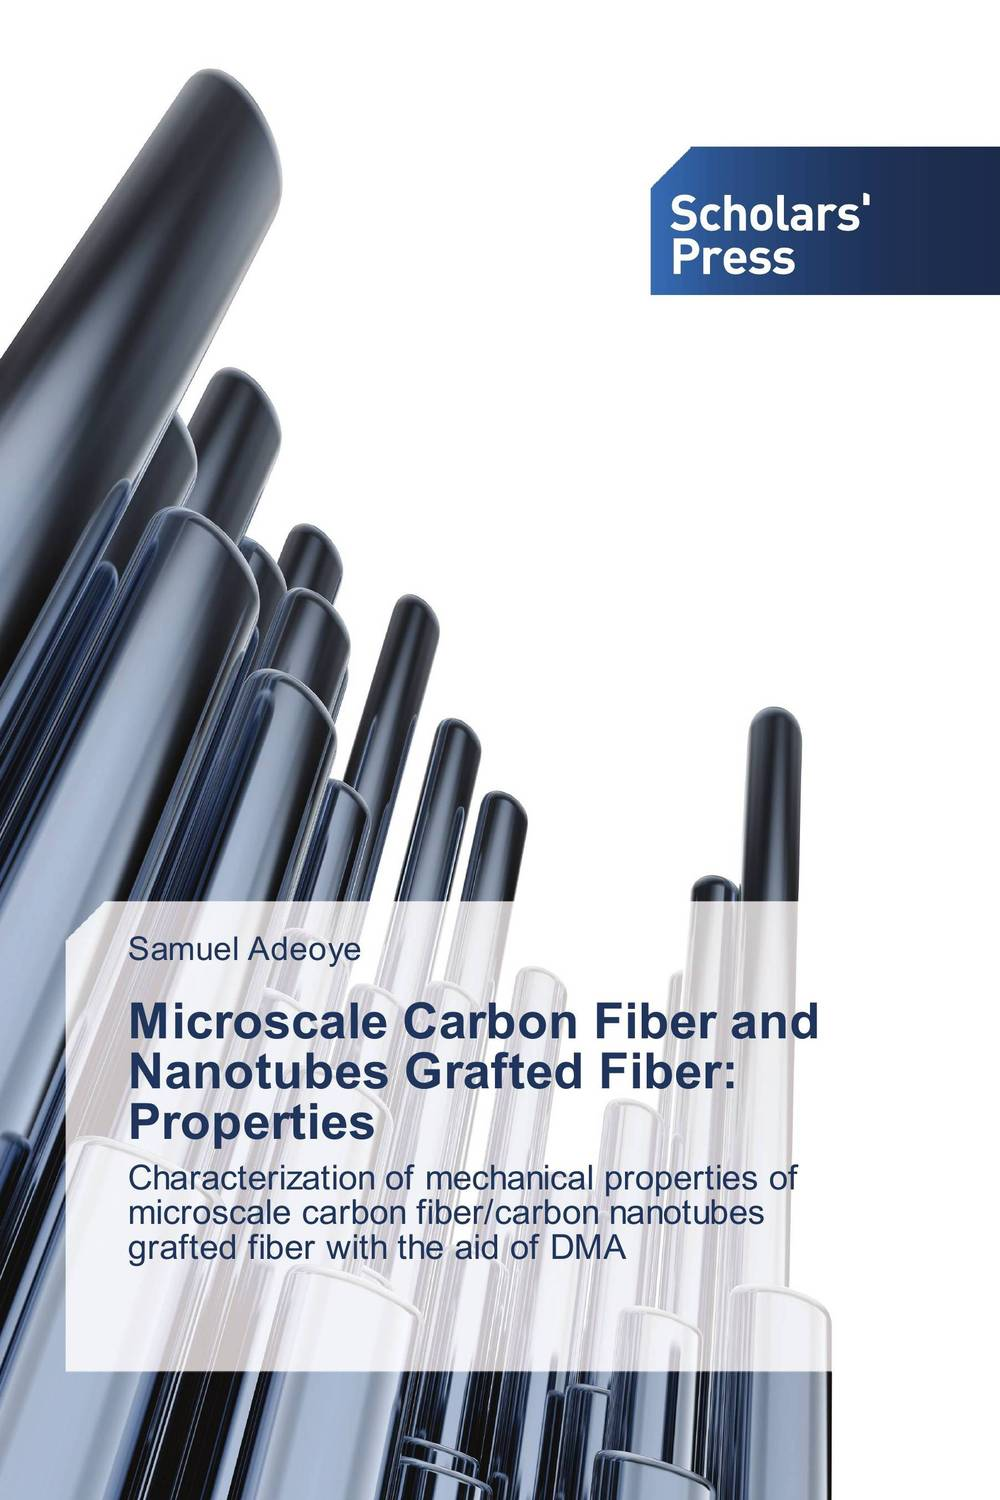 Microscale Carbon Fiber and Nanotubes Grafted Fiber: Properties treatment effects on microtensile bond strength of repaired composite